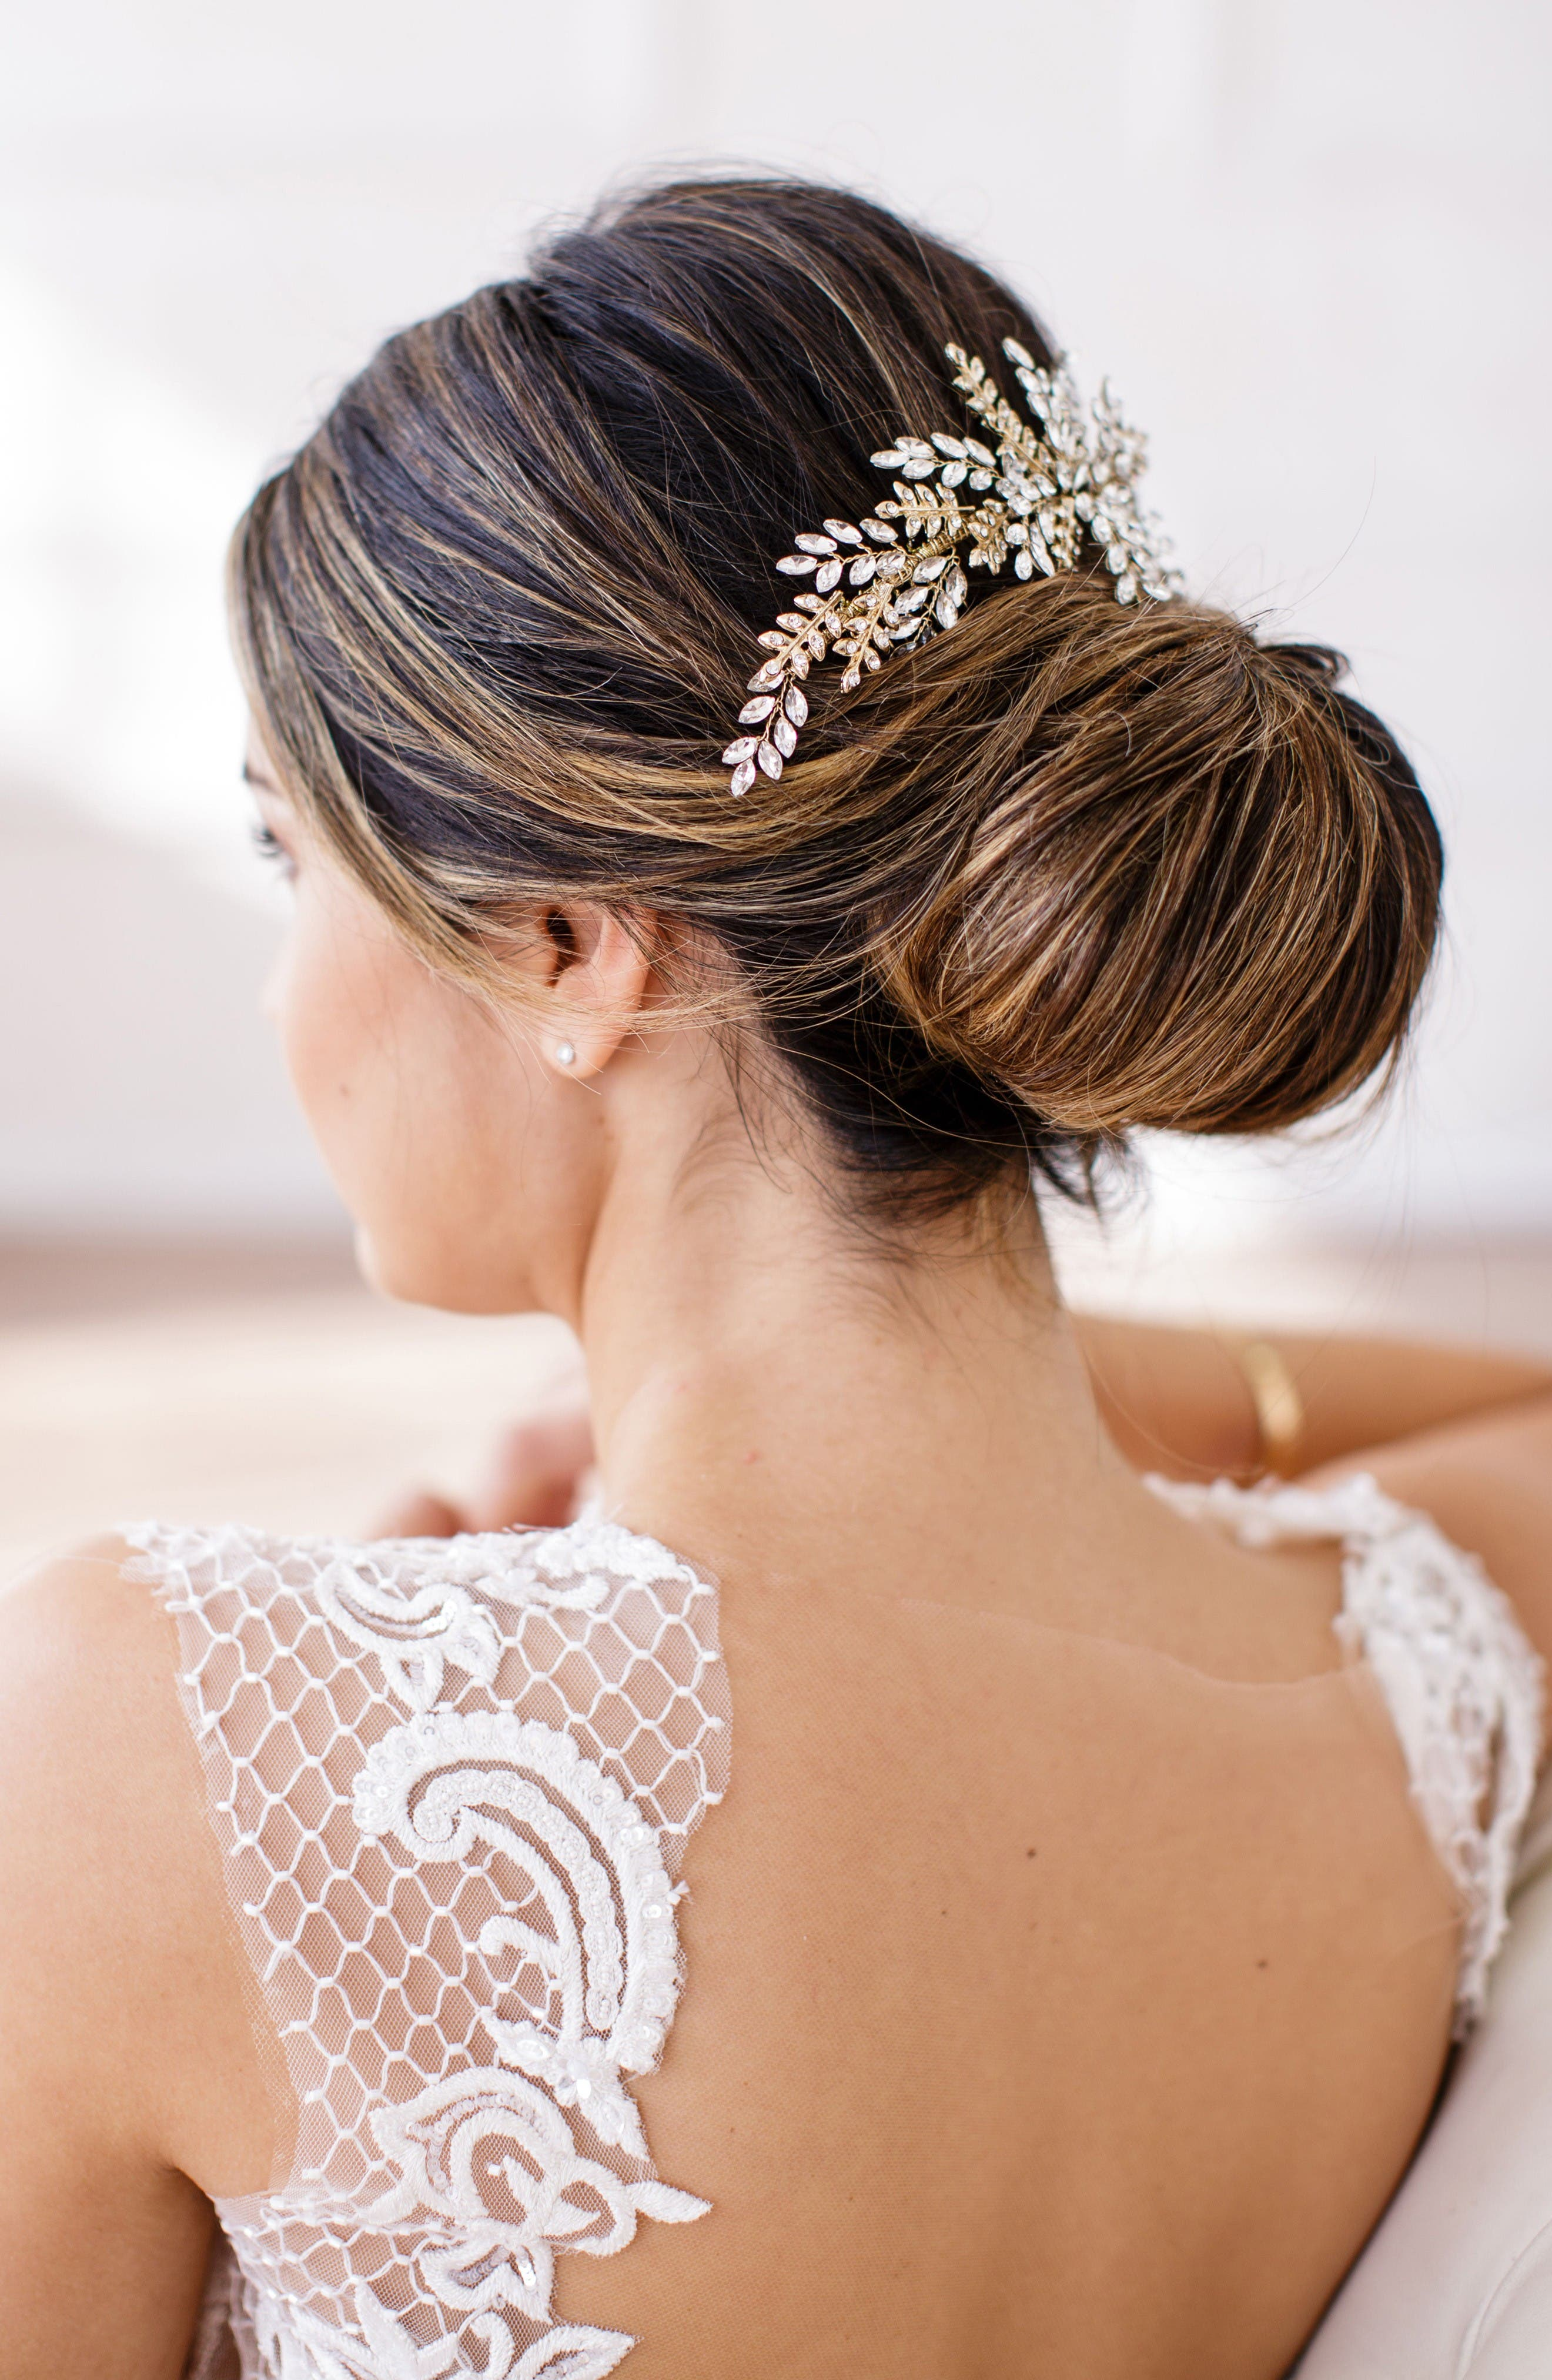 Alternate Image 1 Selected - Brides & Hairpins Serena Crystal Hair Comb